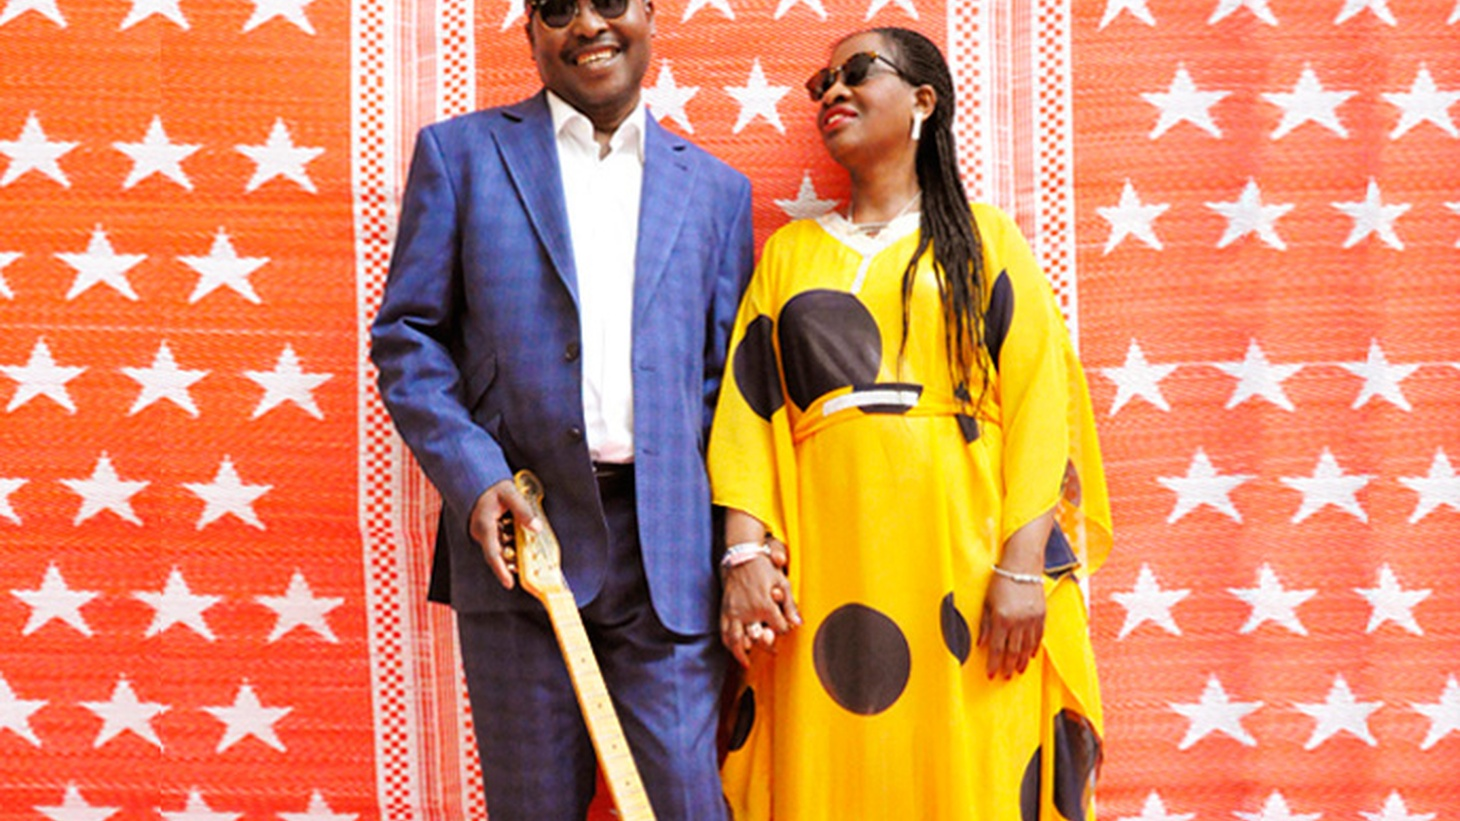 Malian musical duo Amadou & Marion delivered another impeccable performance on MBE recently, not surprising for these internationally loved artists.